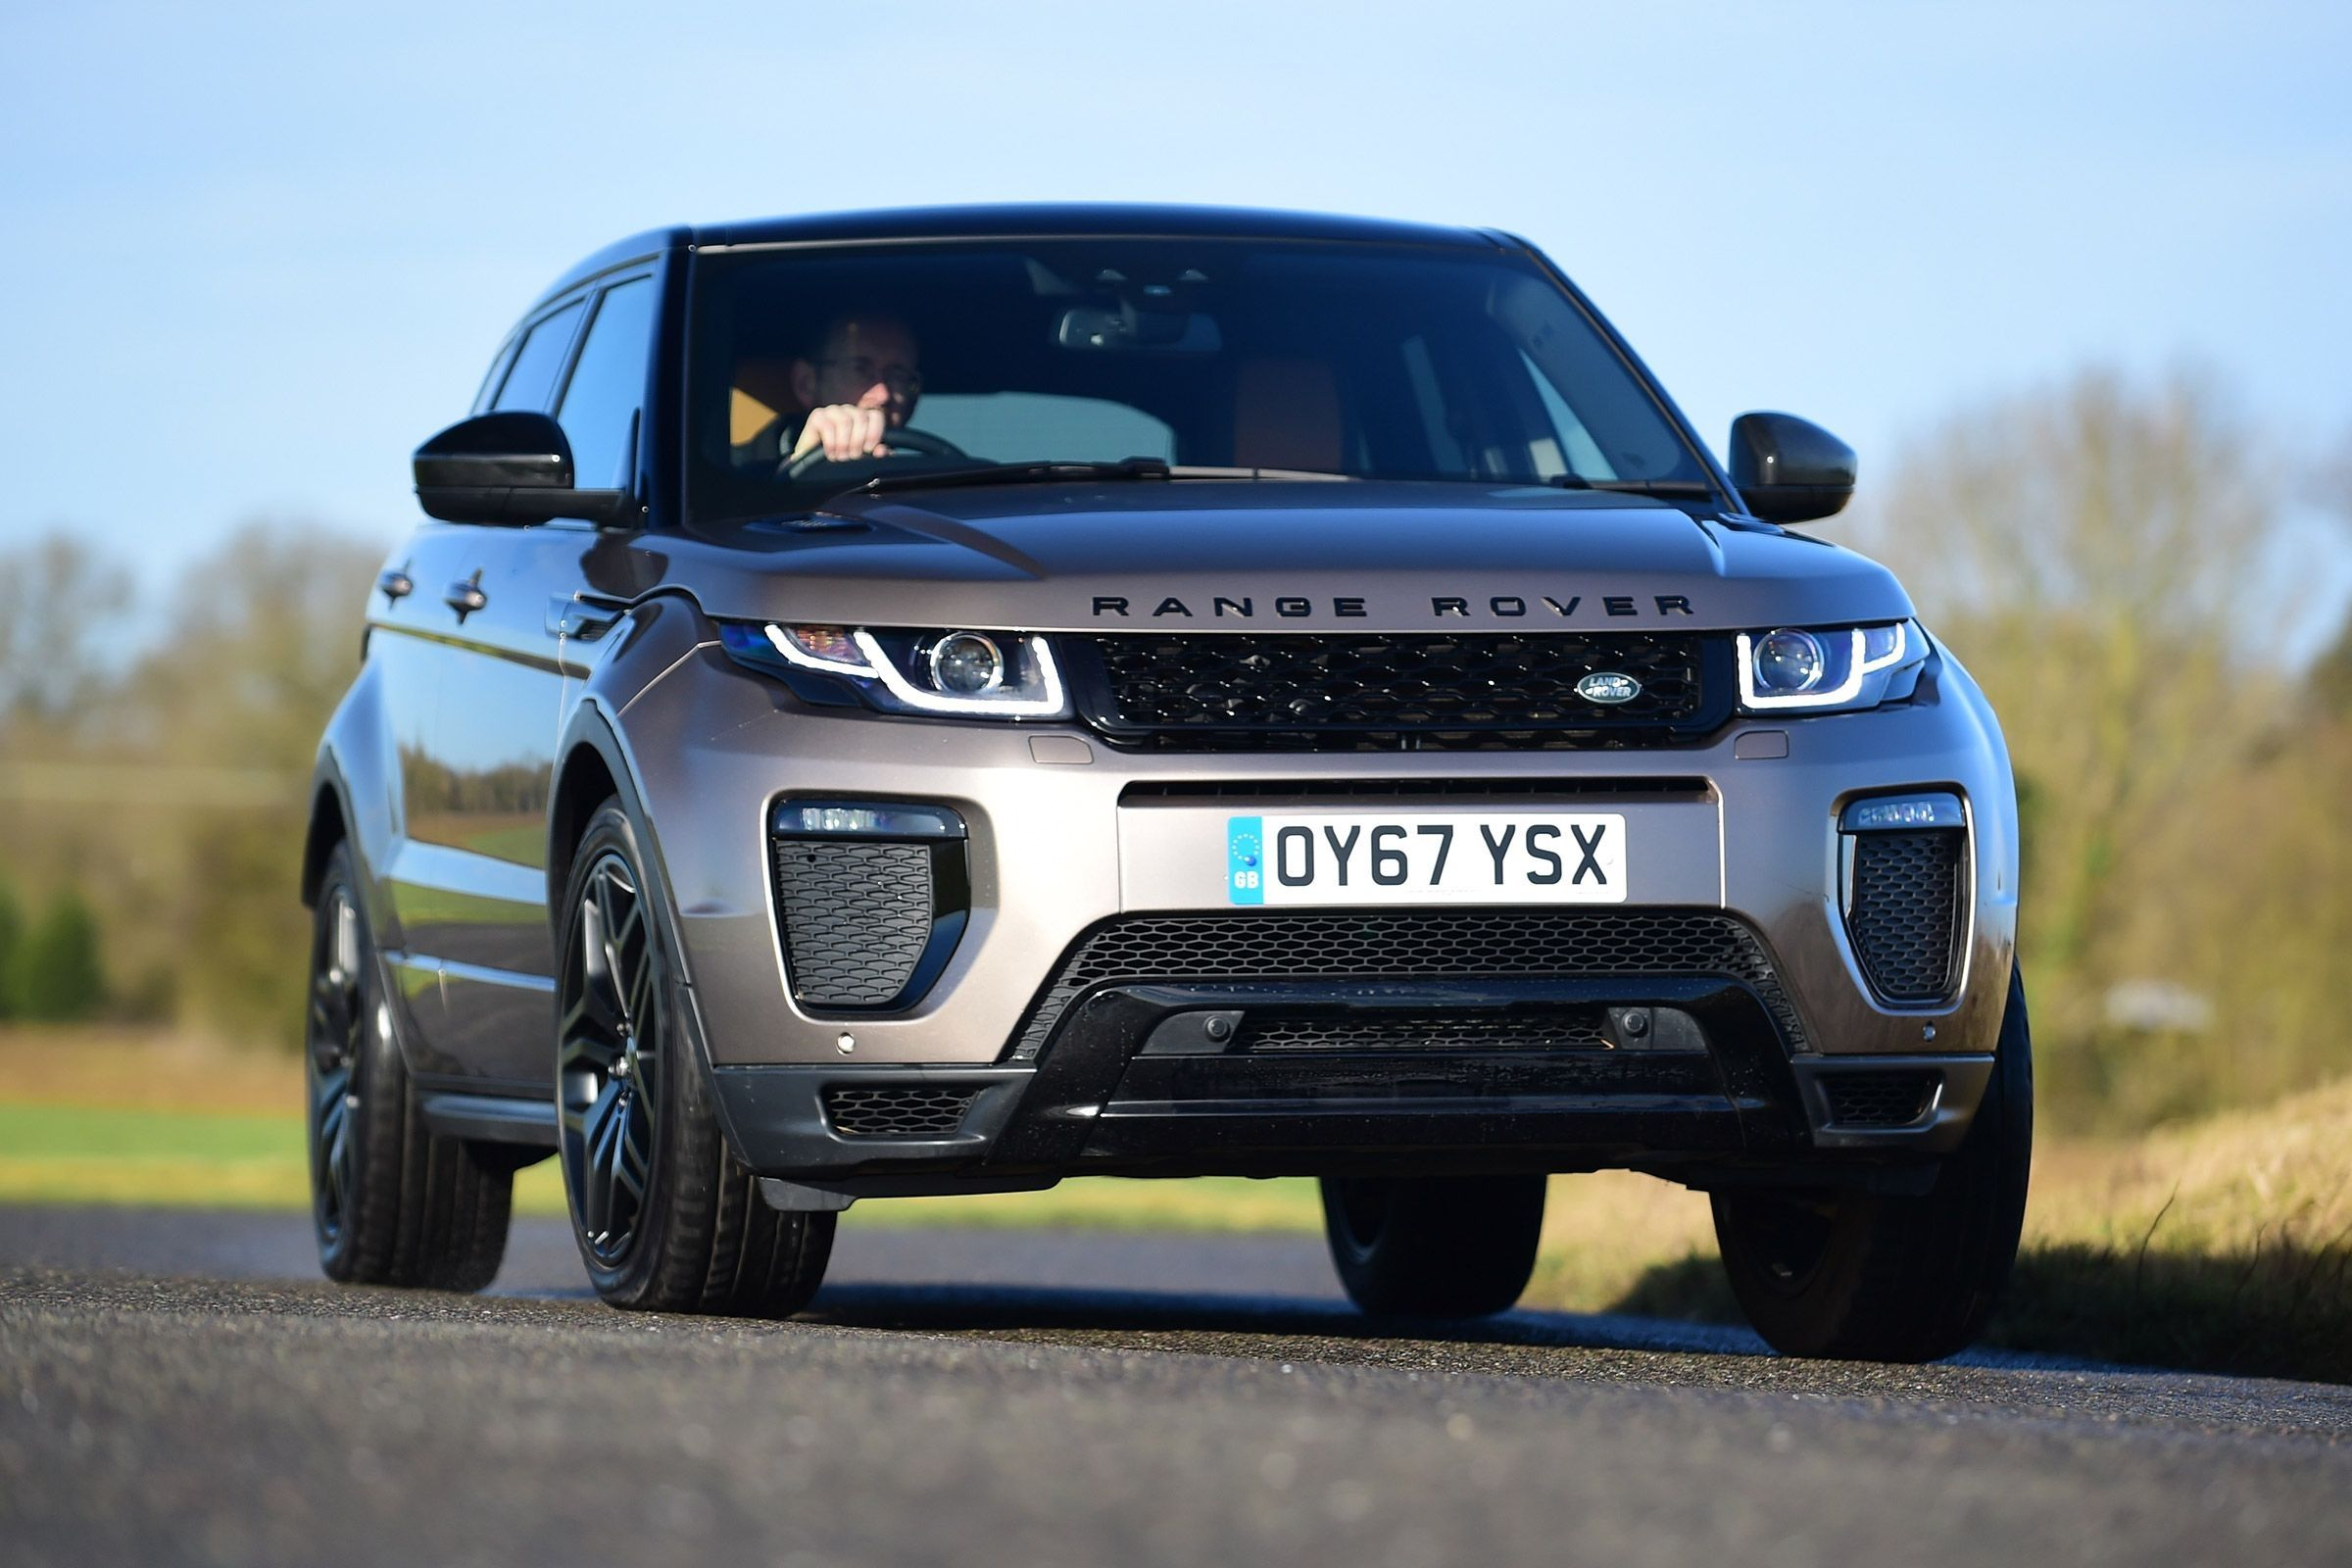 Best Range Rover Evoque 2018 Price Review and Release Date